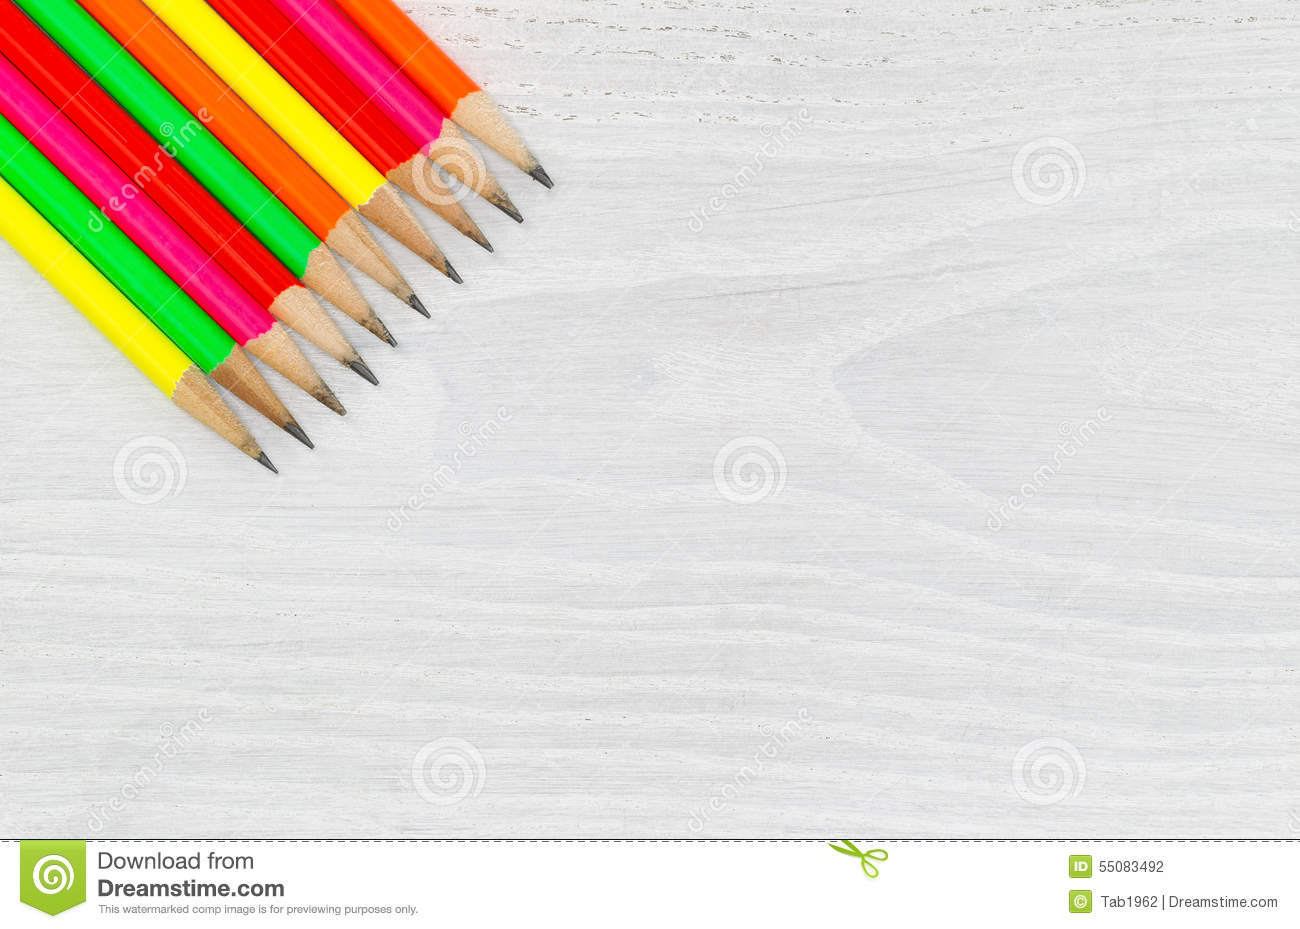 Bright Colorful Pencil Tips On White Wood Desktop Stock Photo